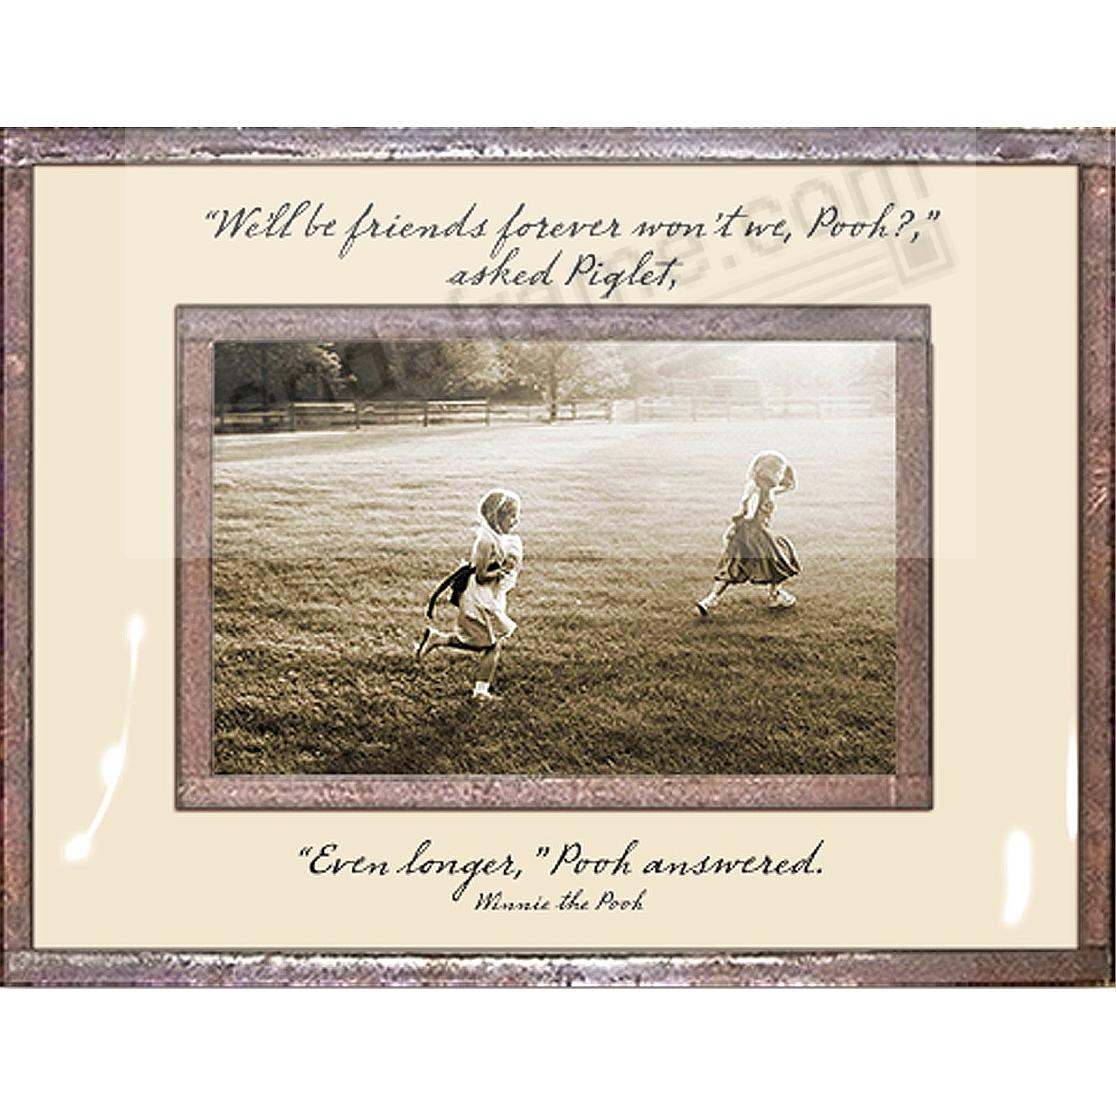 FRIENDS FOREVER?...EVEN LONGER - WINNIE THE POOH Copper + Clear ...